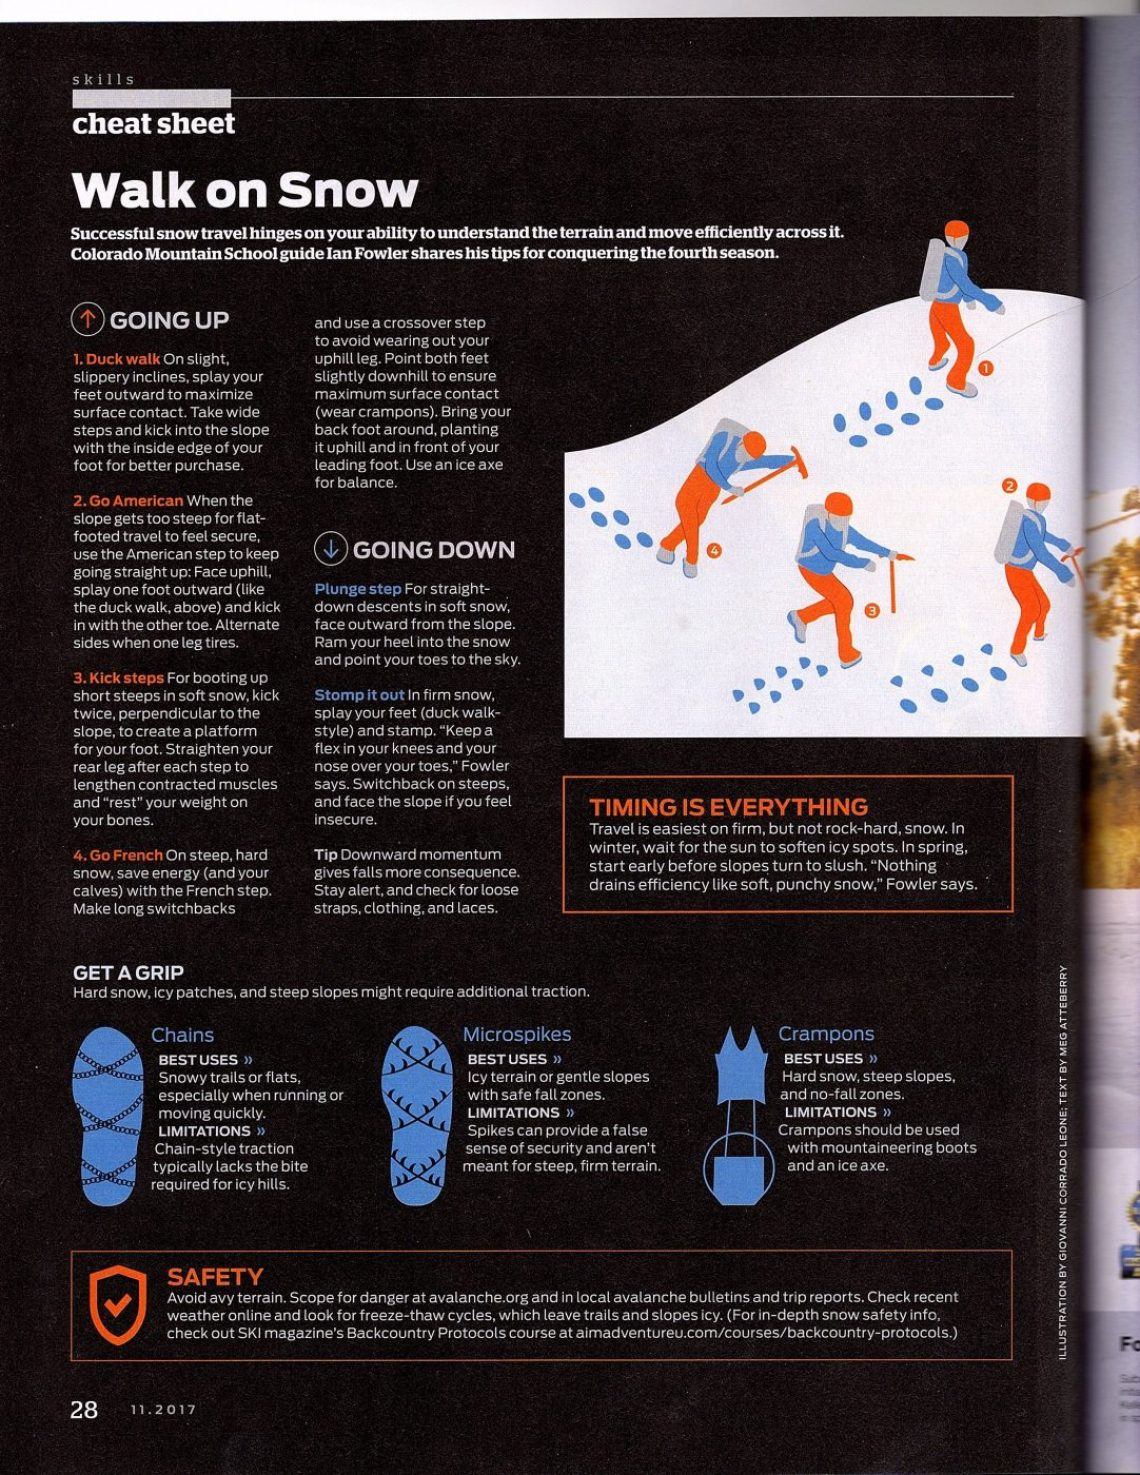 Backpacker Magazine Walk on Snow